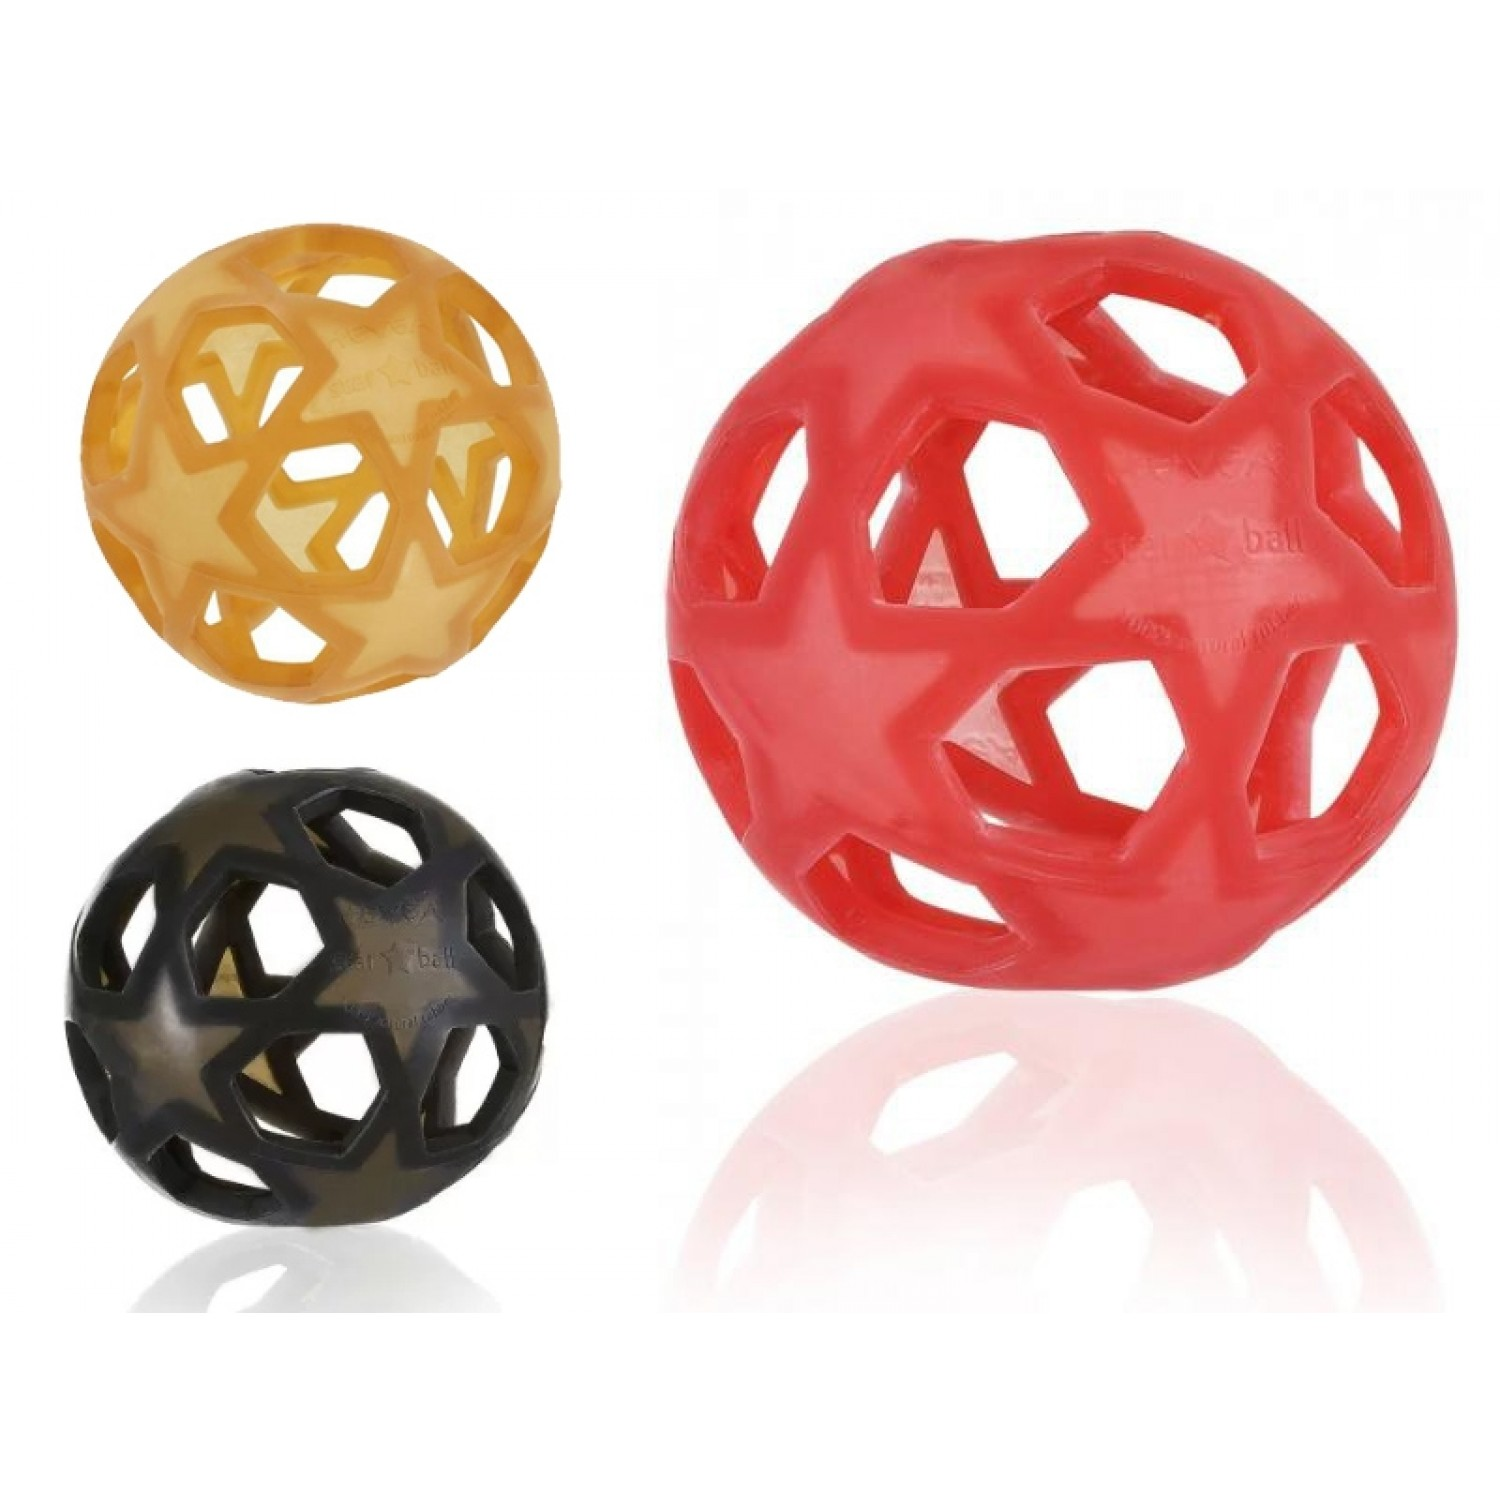 Hevea Star Ball made of Natural Rubber different colours